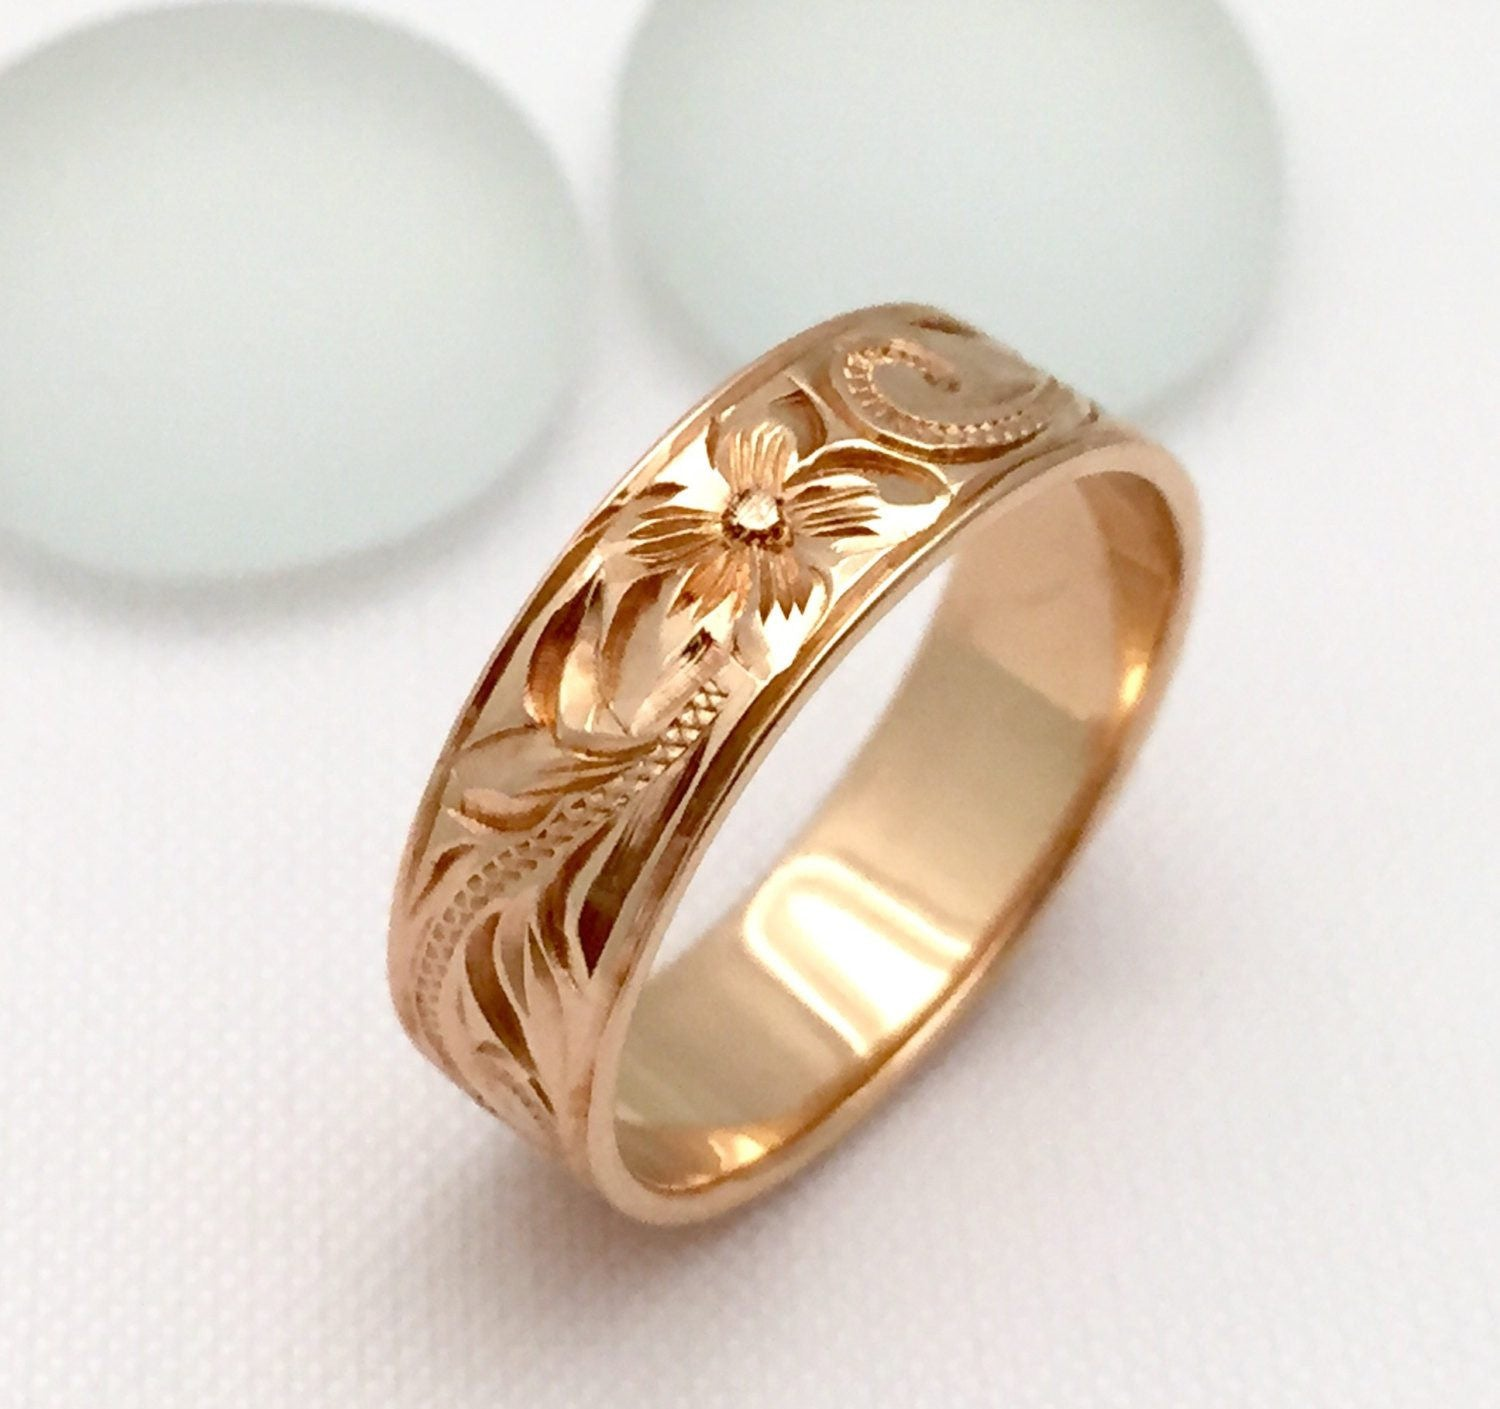 Traditional Hawaiian Hand Engraved 14k Gold Ring (6mm width, Flat Style) - Aolani Hawaii